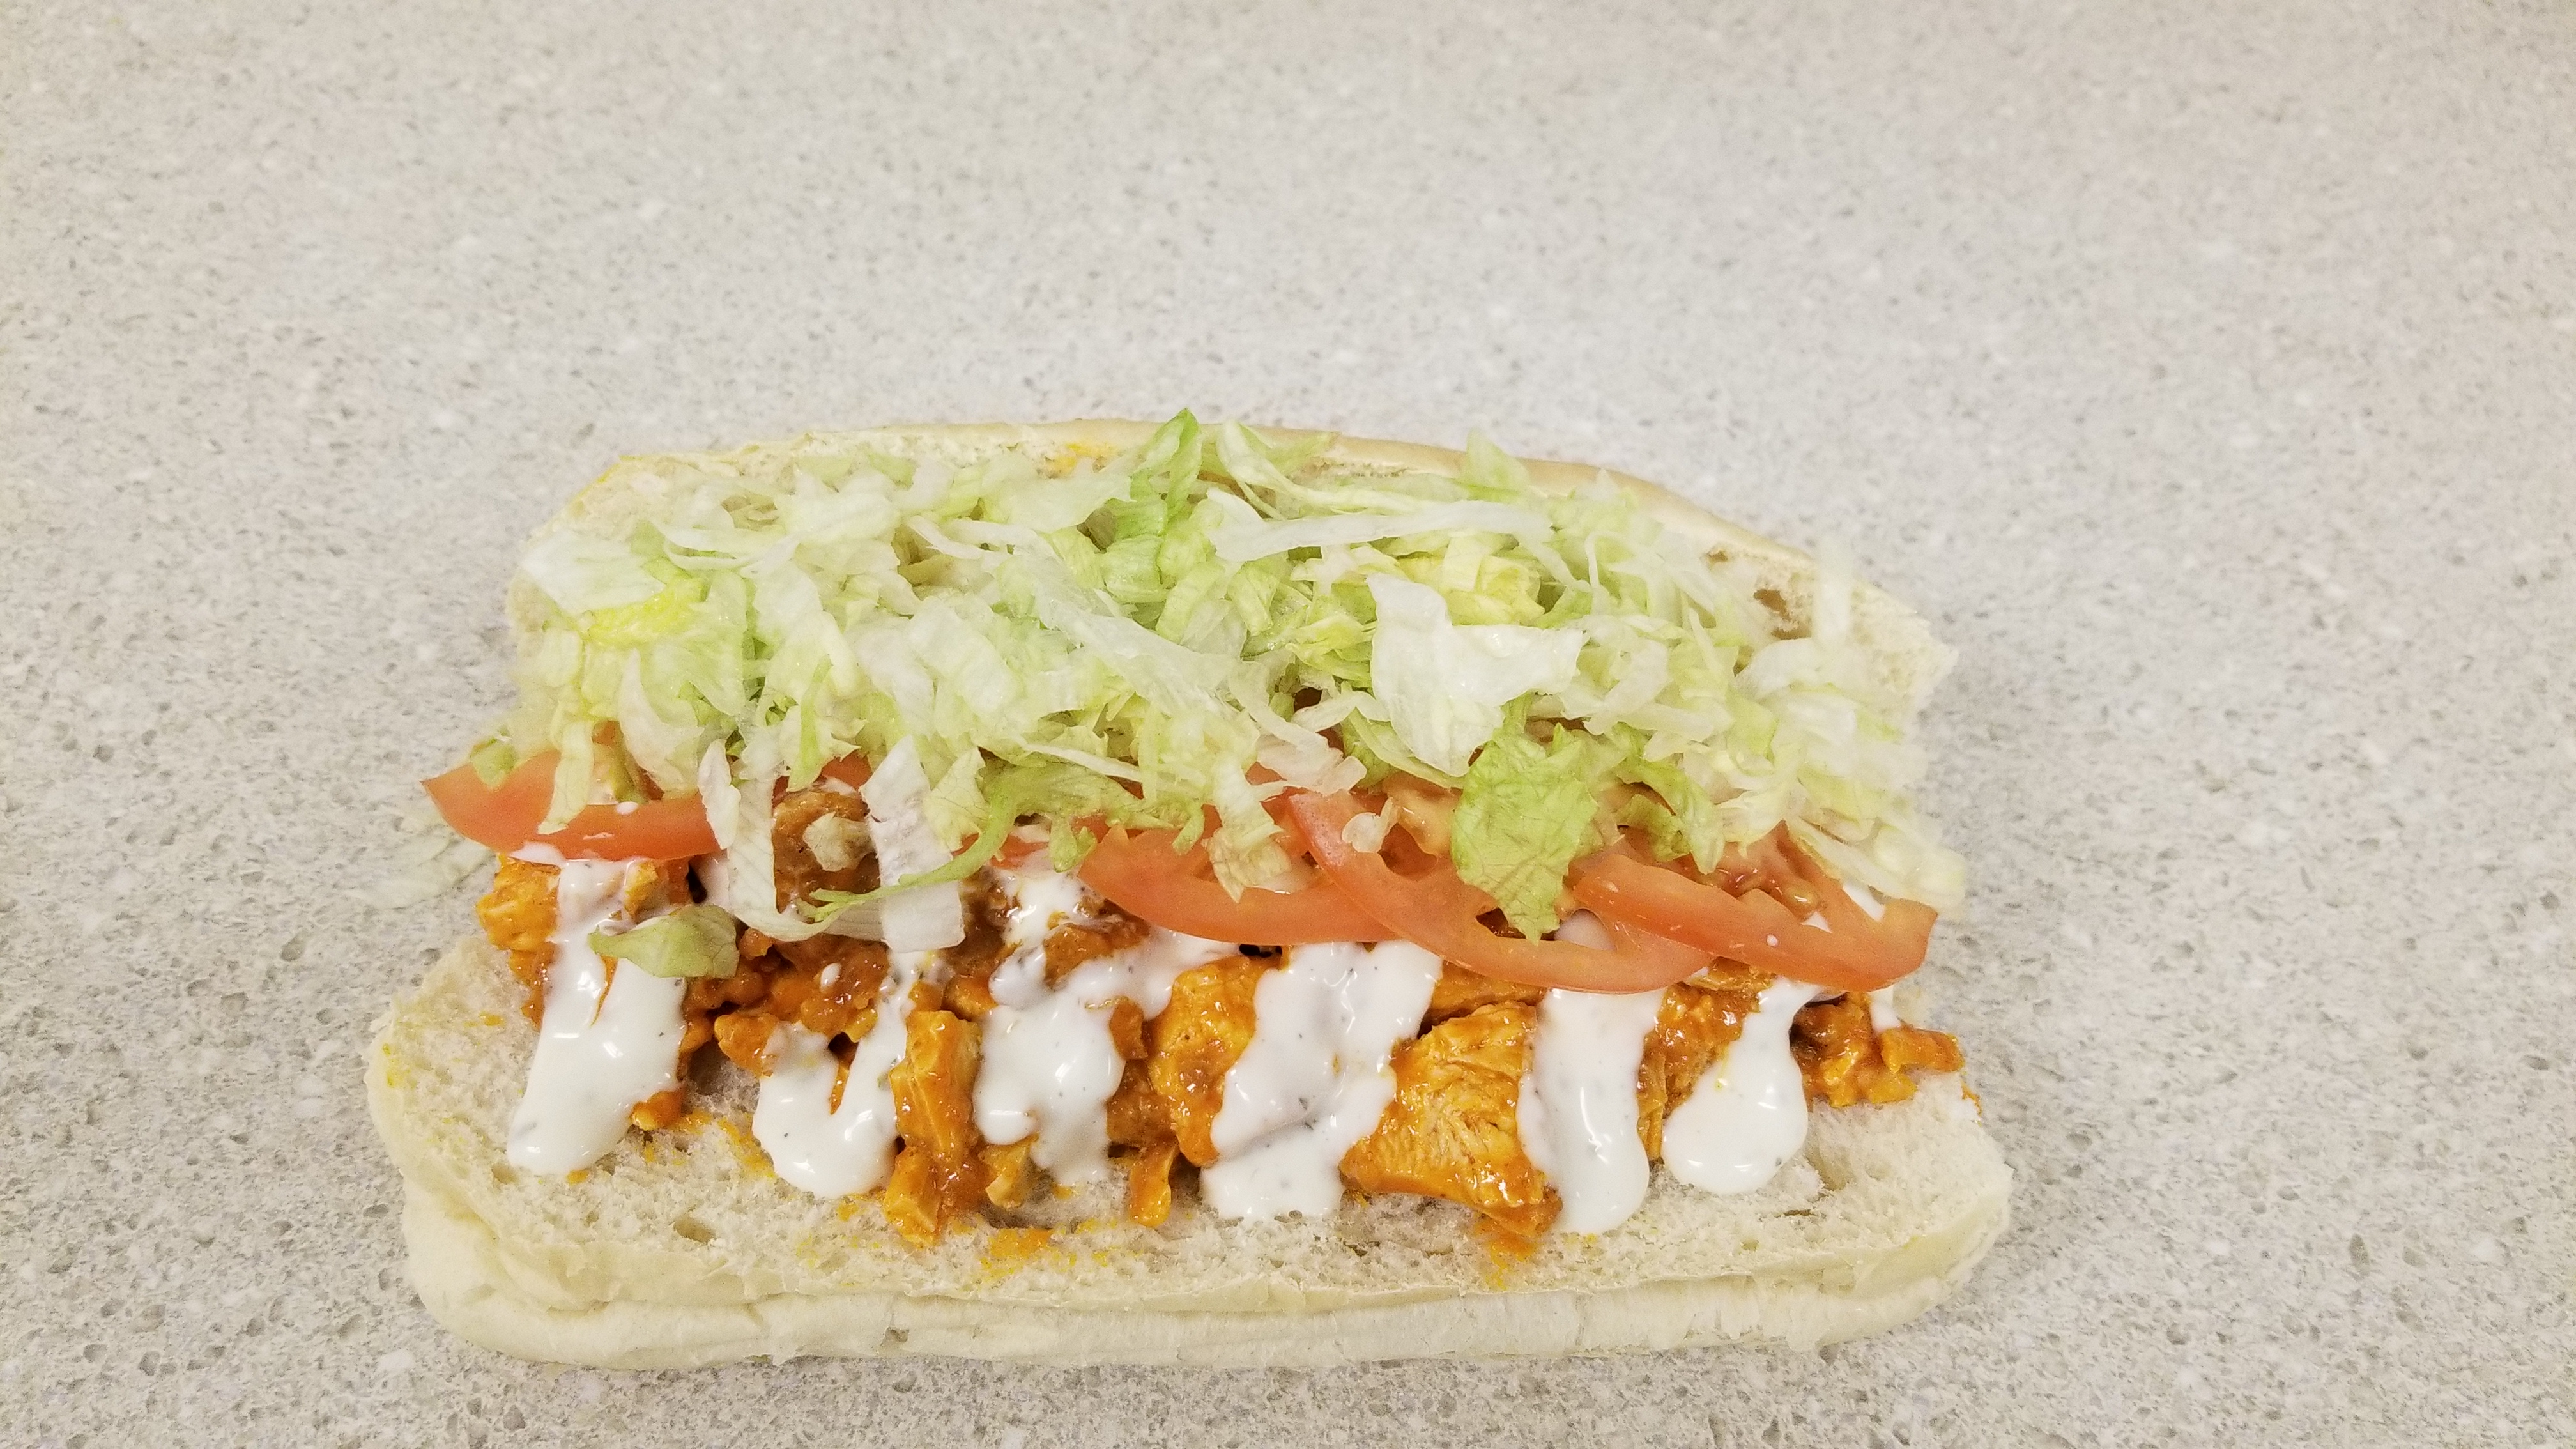 Are You Craving a Fresh and Delicious Sub?